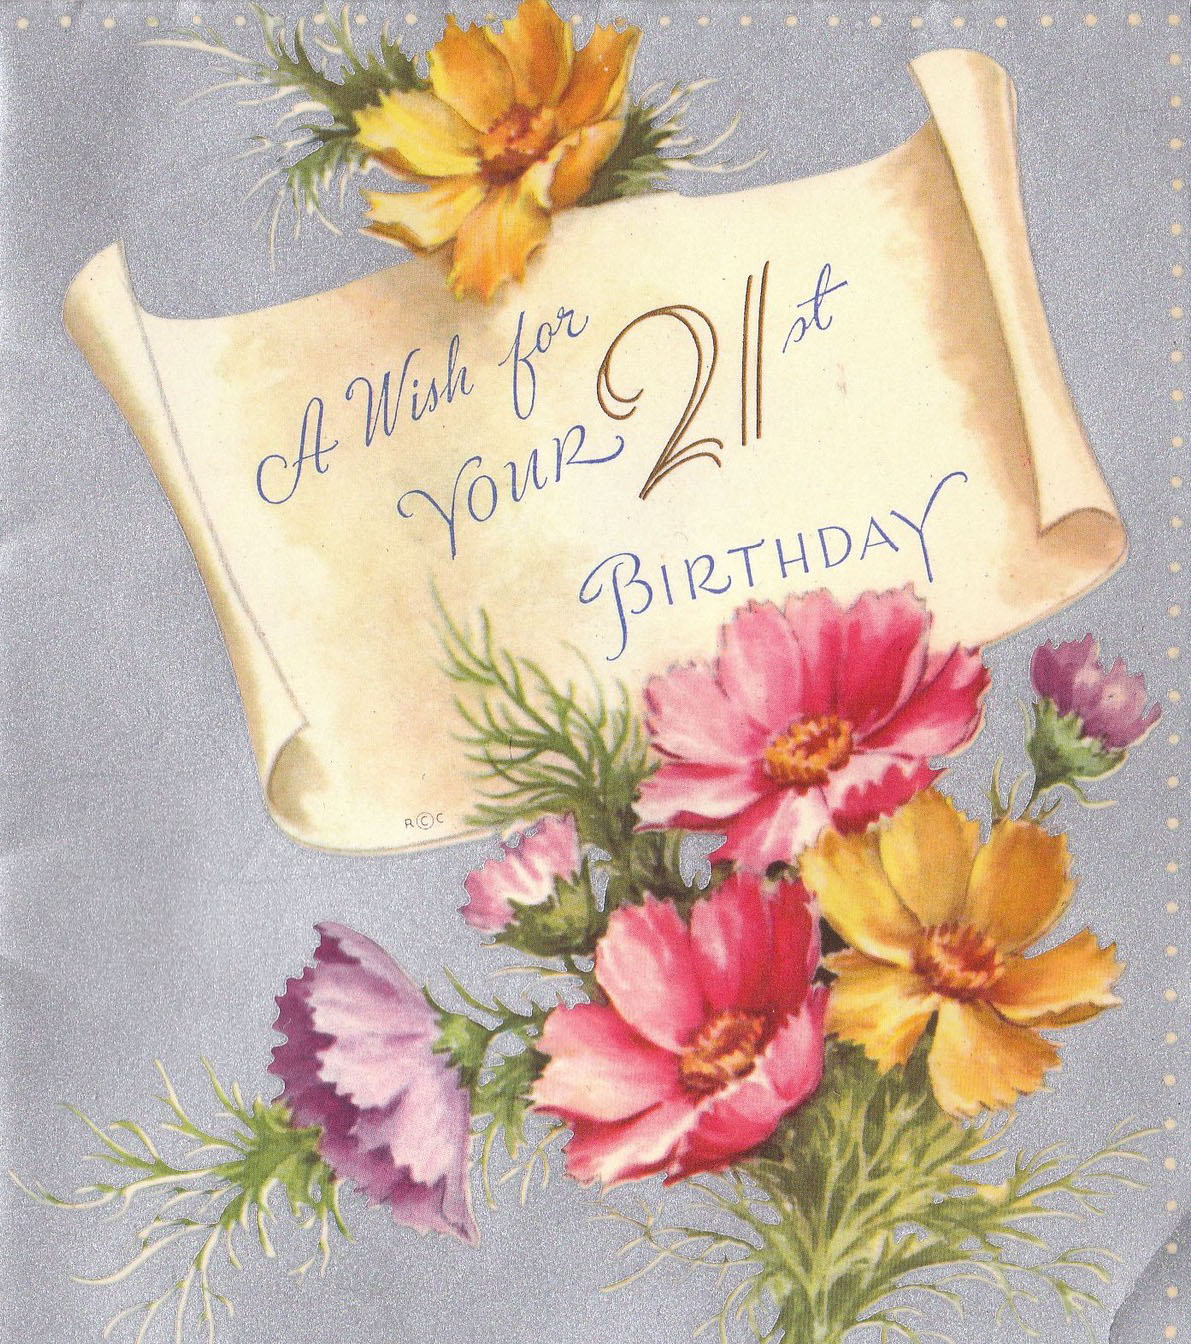 greeting card messages for 21st birthday ; 21st-birthday-flower-1